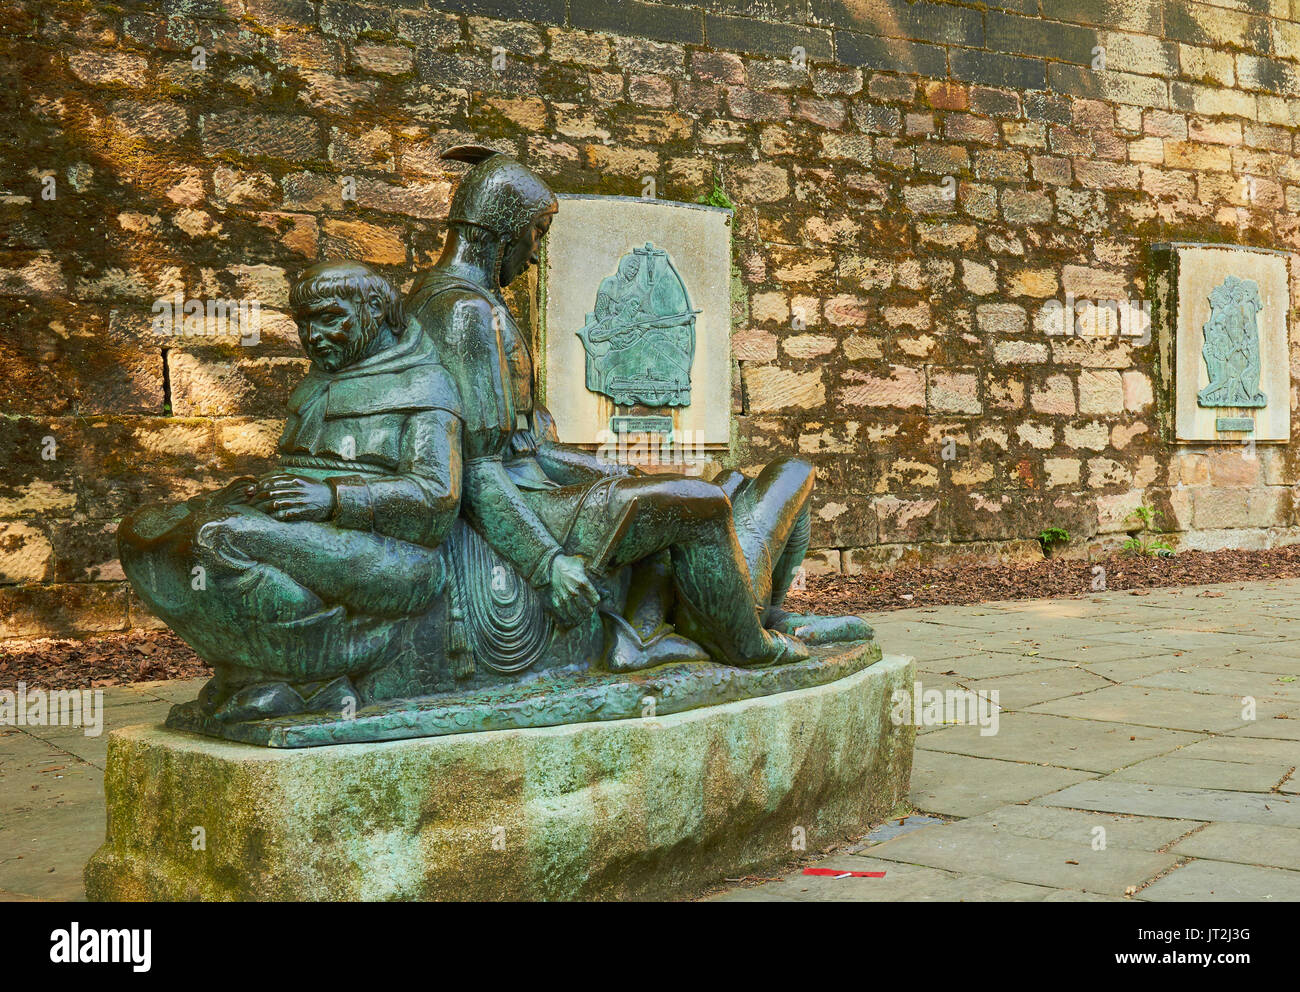 Bronze 1952 sculpture by James Woodford of Friar Tuck reading to Little John and Will Stukely, Castle Road, Nottingham, - Stock Image